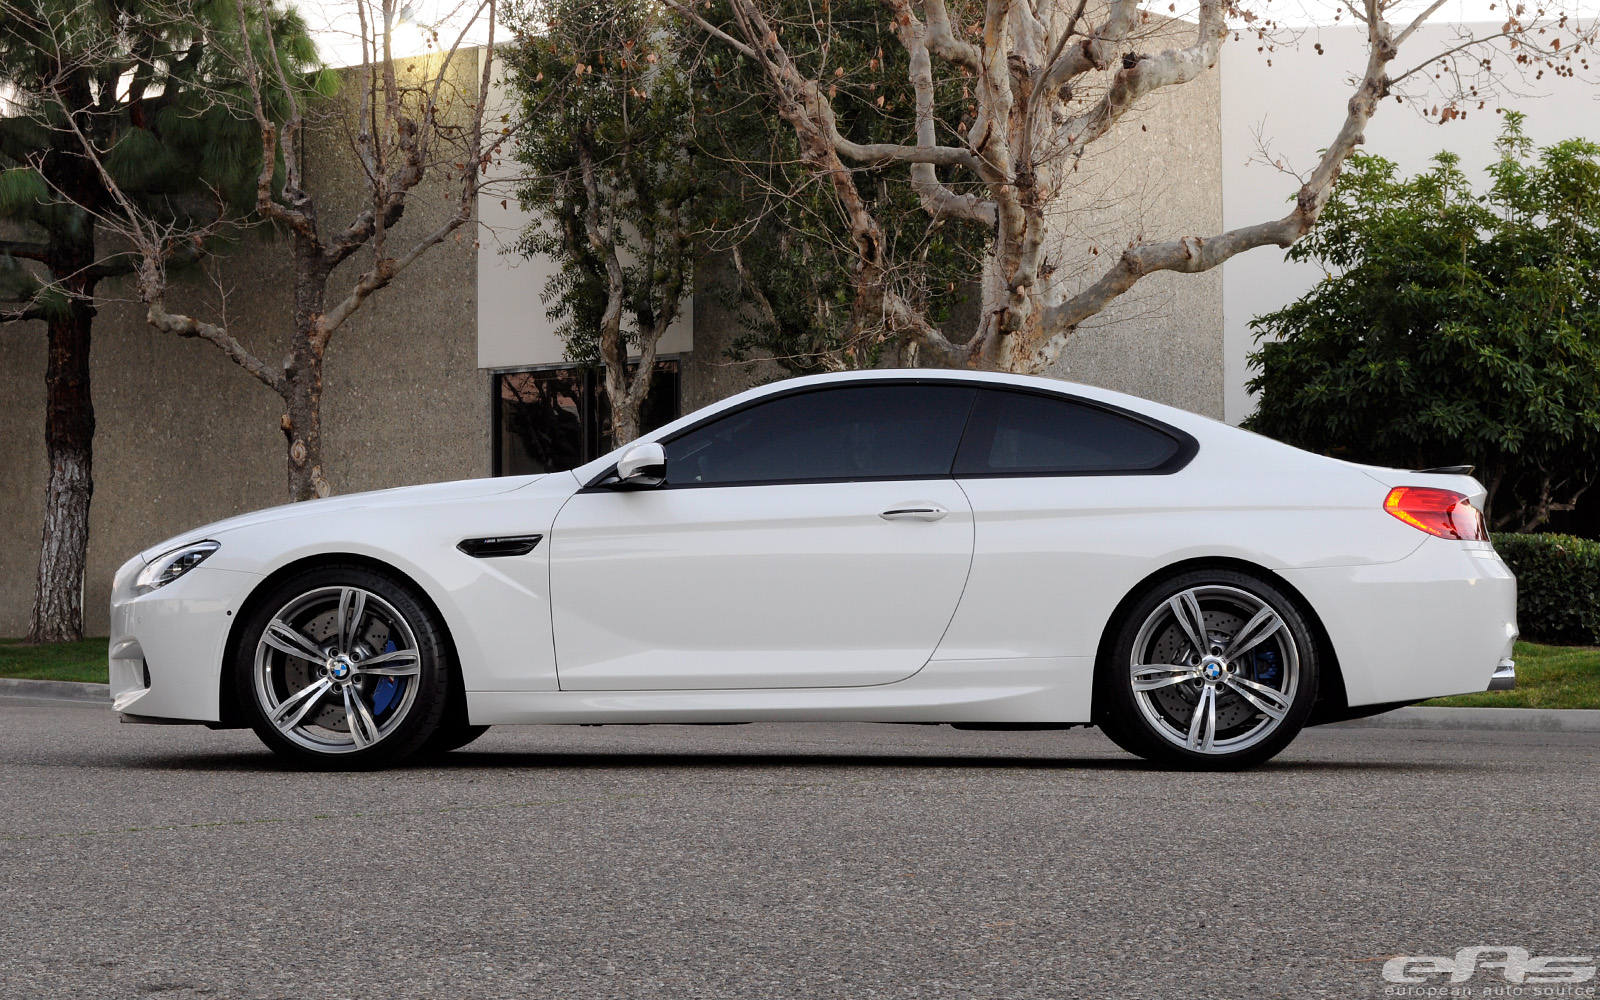 Alpine White 2013 BMW M6 by eas